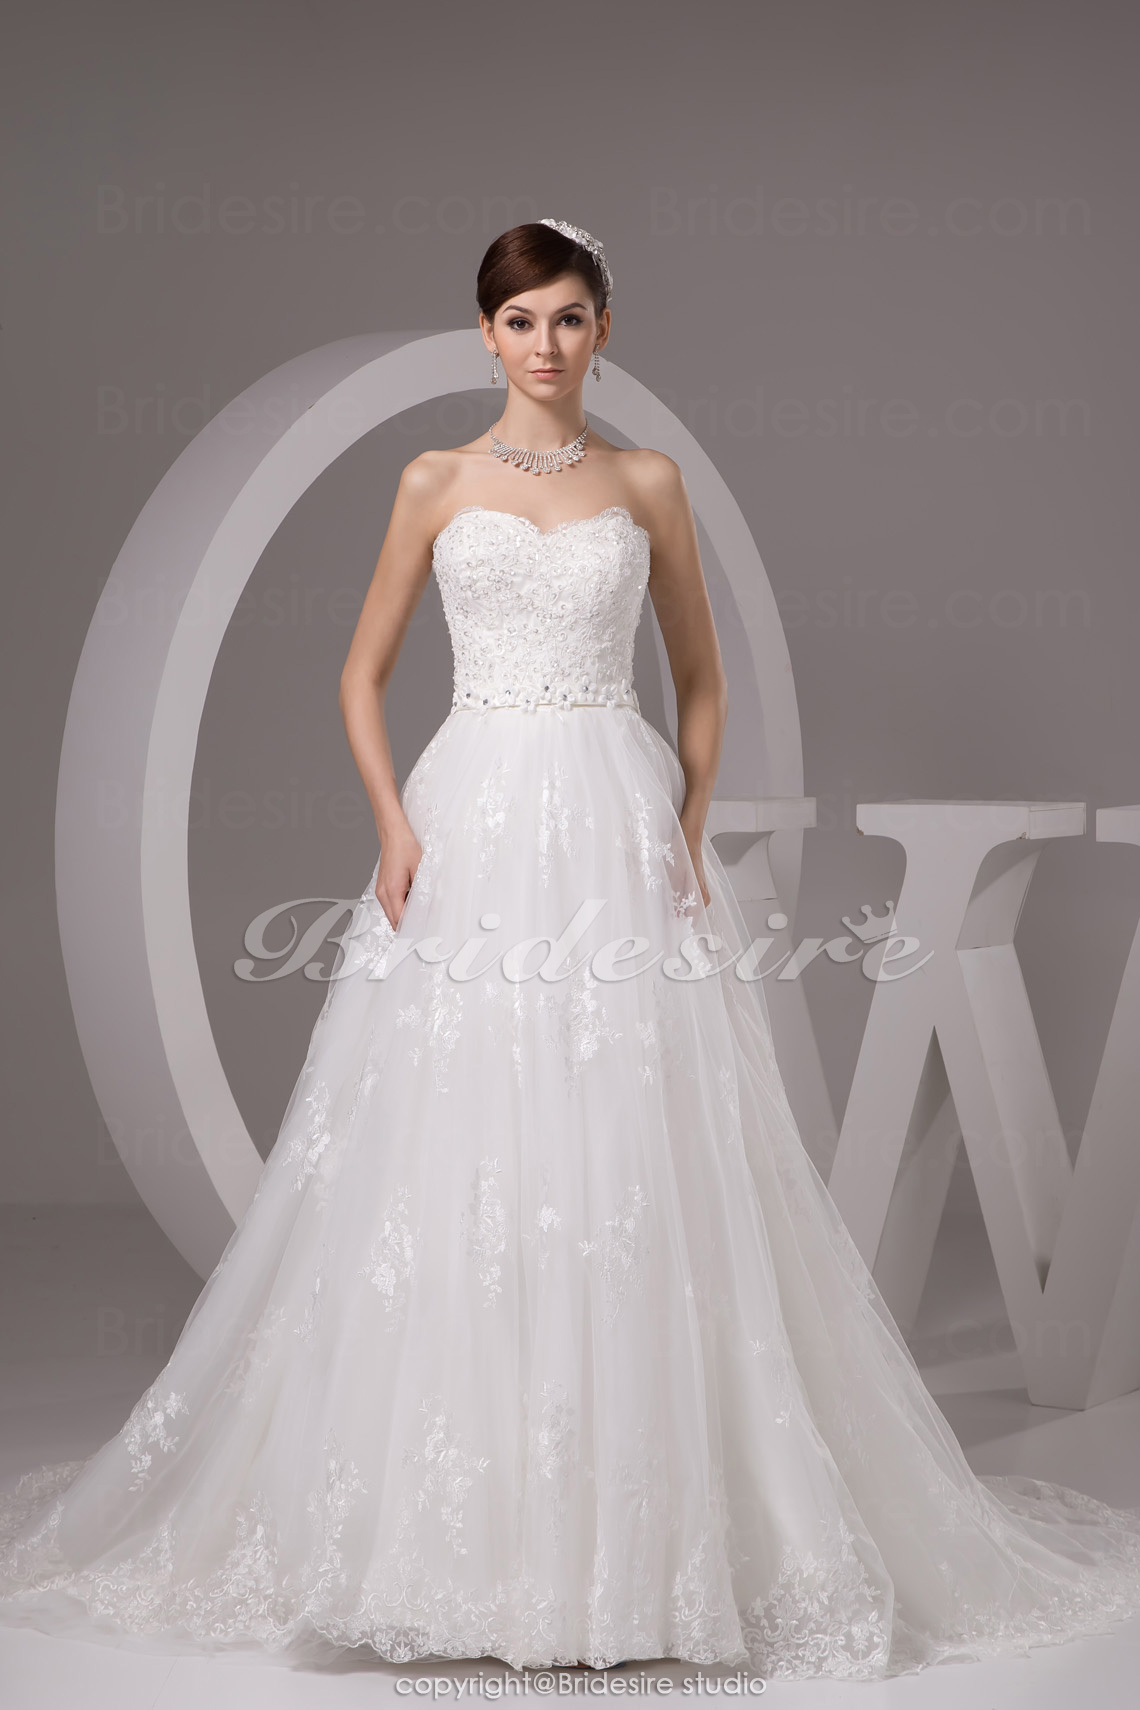 A-line Sweetheart Chapel Train Sleeveless Lace Wedding Dress